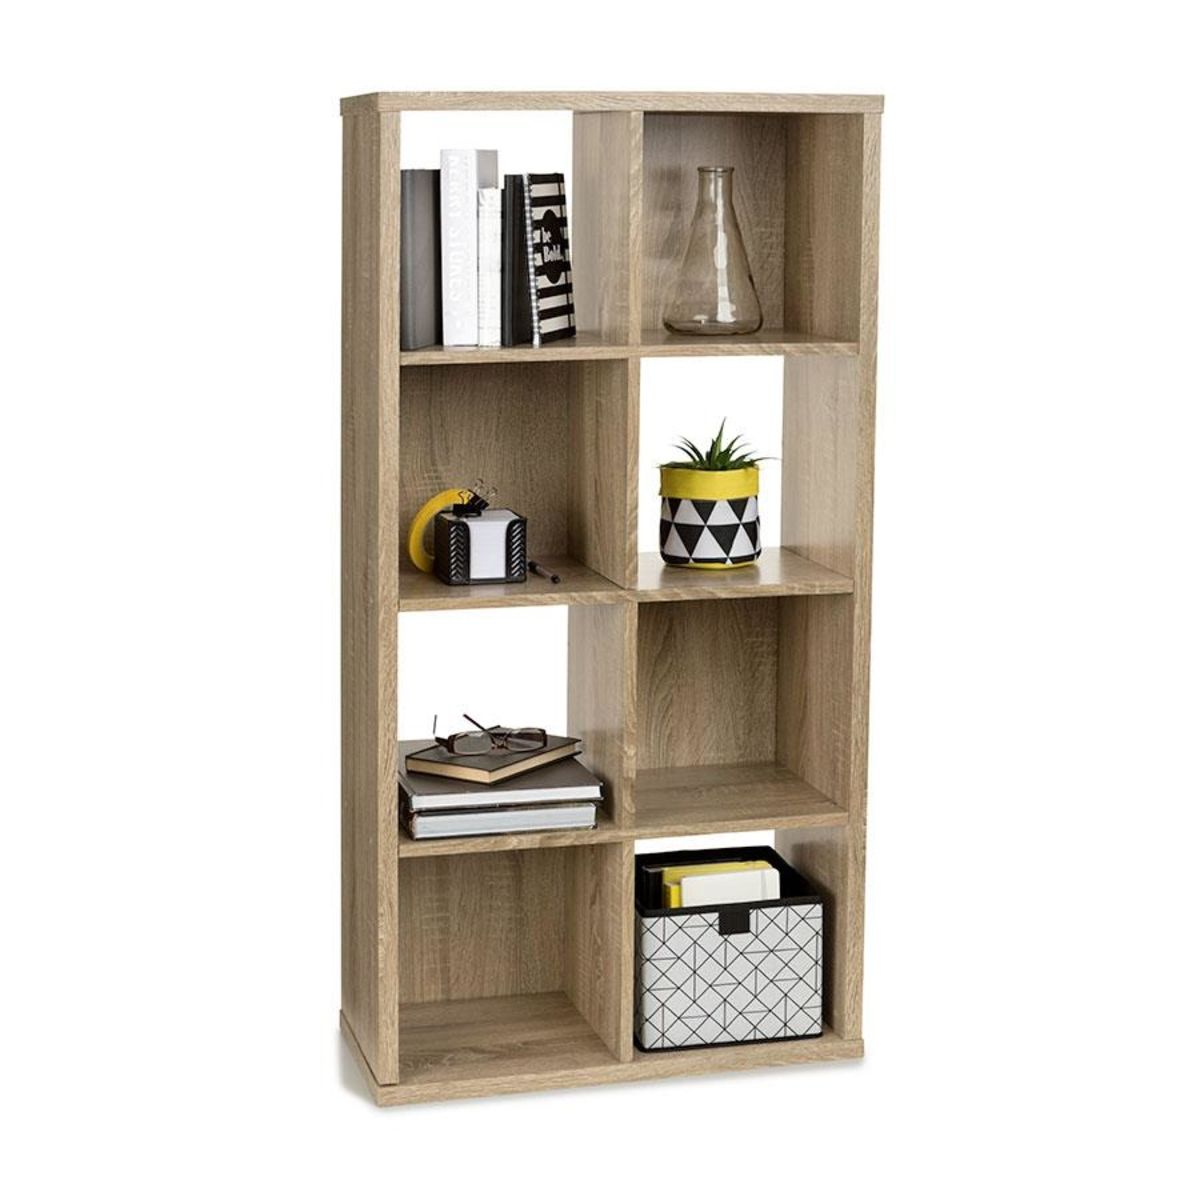 Storage Unit 8 Cube - Natural | Kmart | Furniture | Pinterest ...